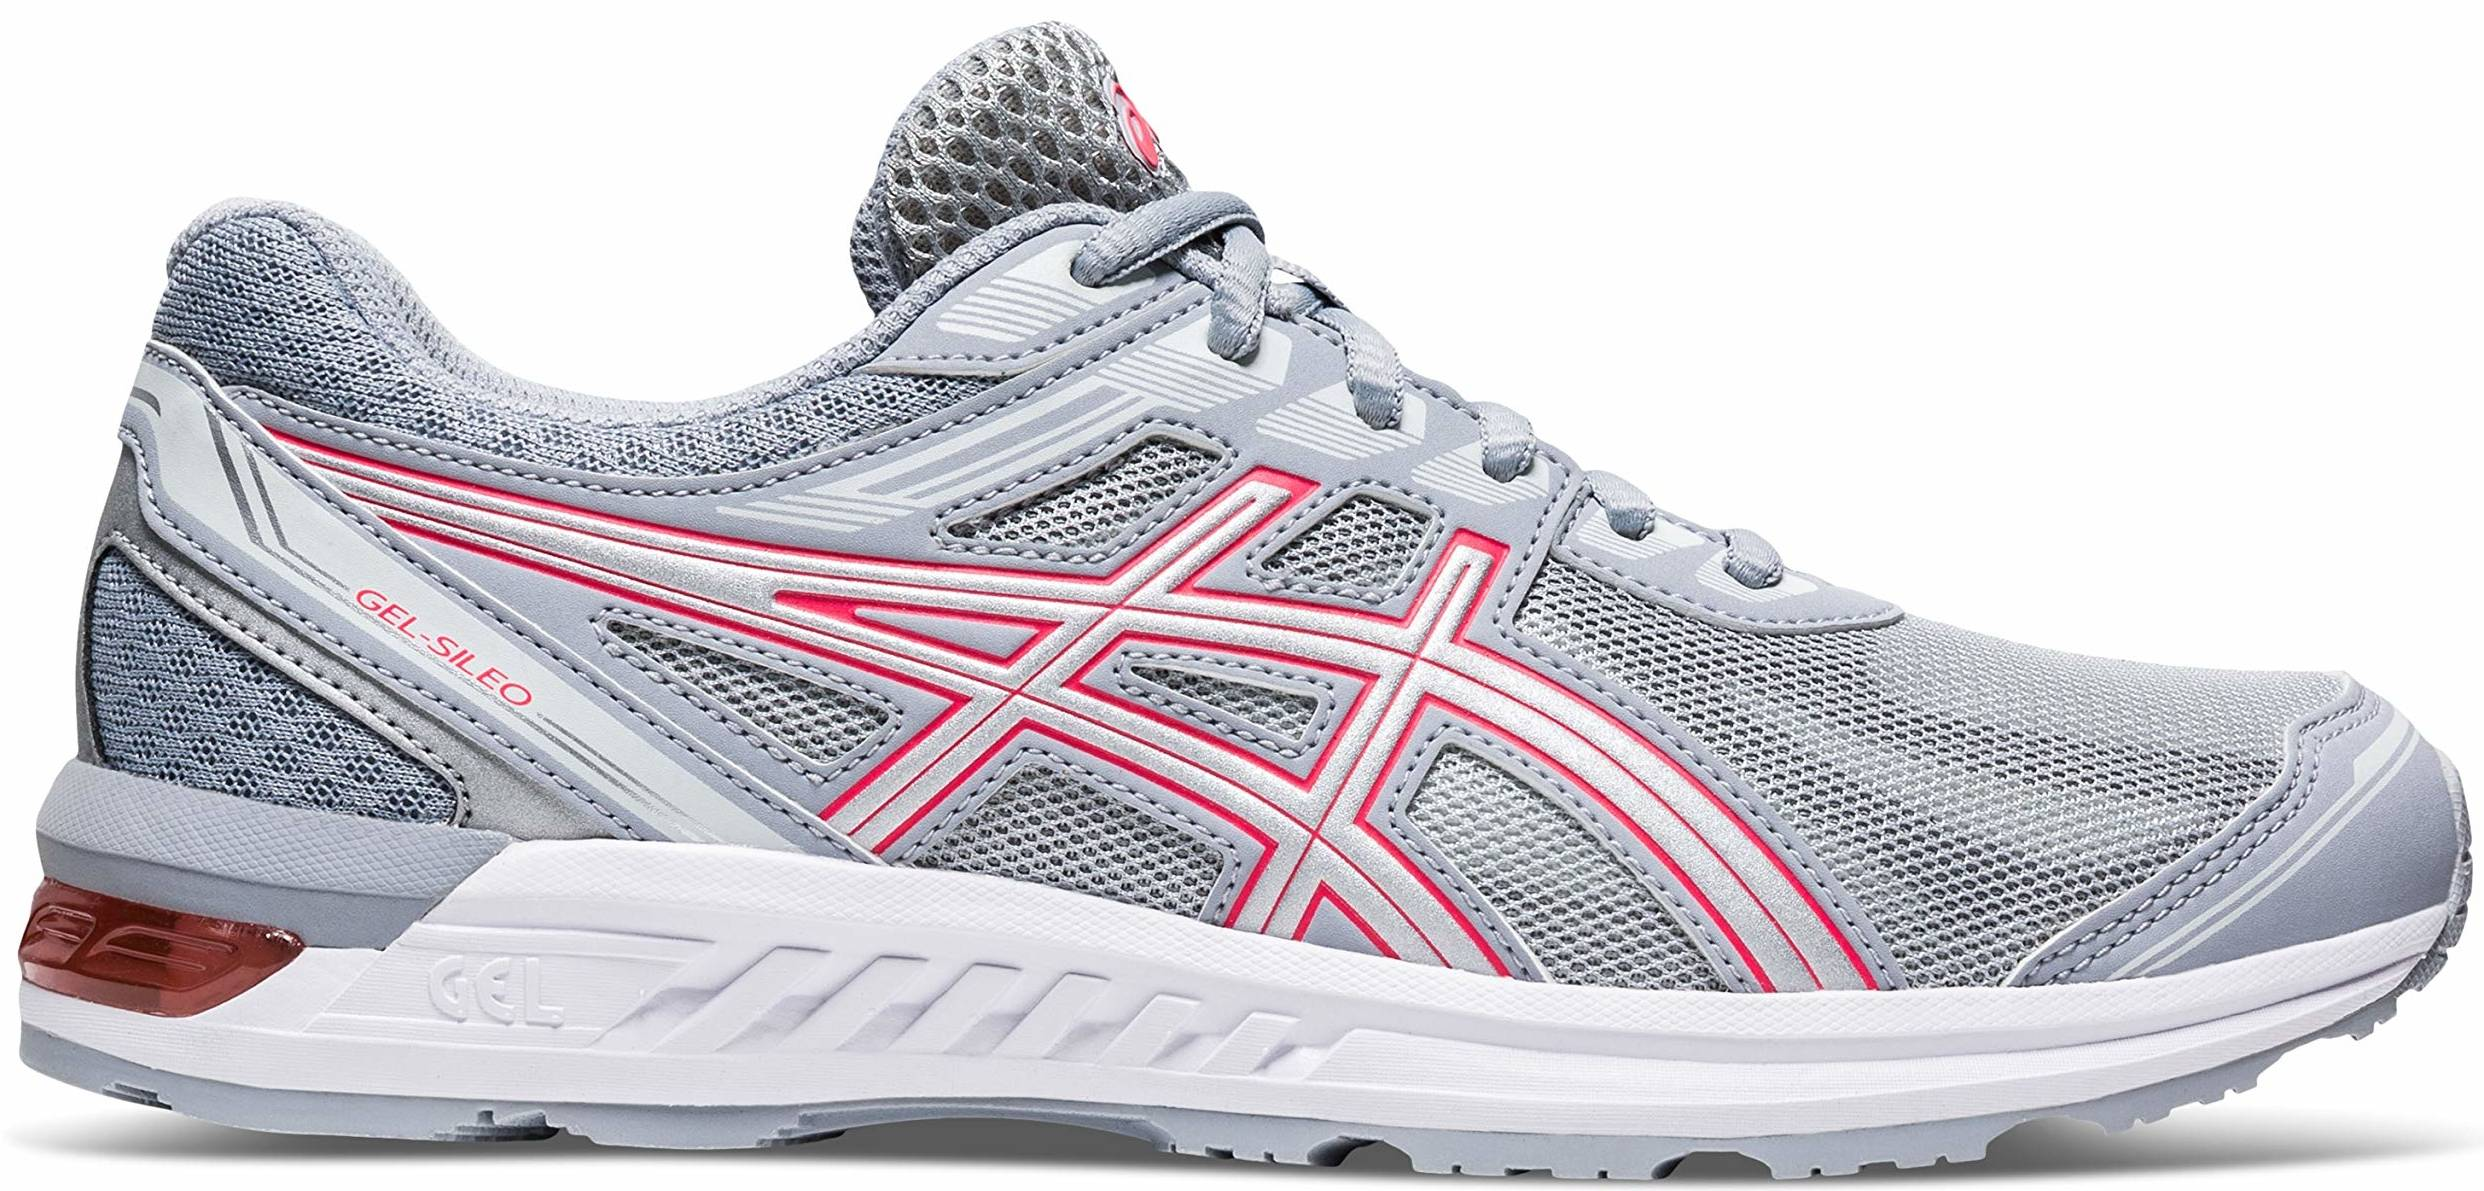 Only £36 + Review of Asics Gel Sileo